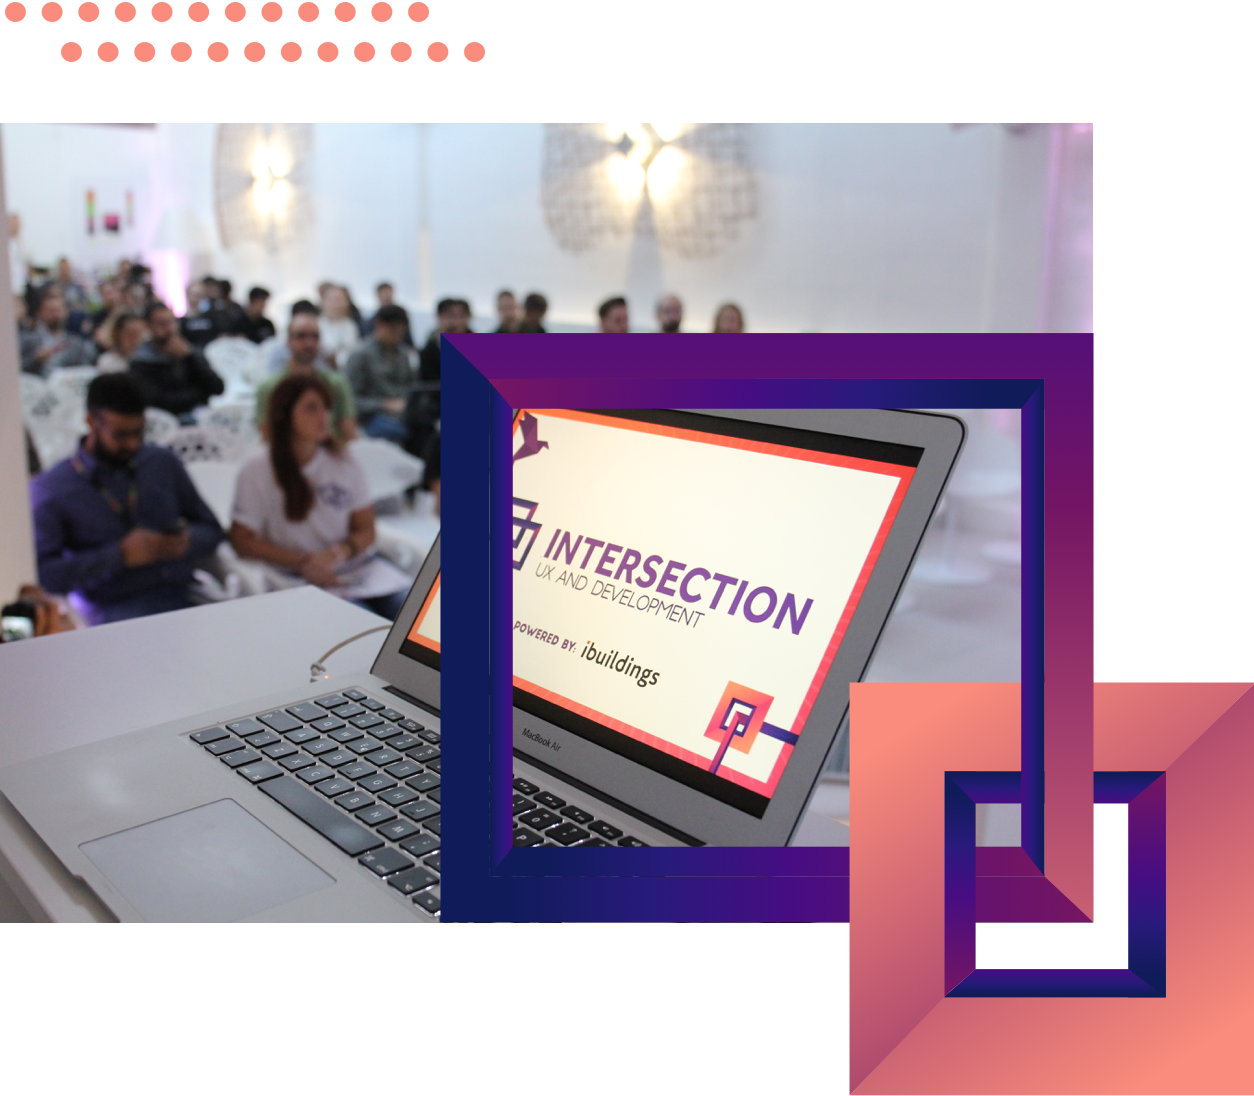 Intersection conference